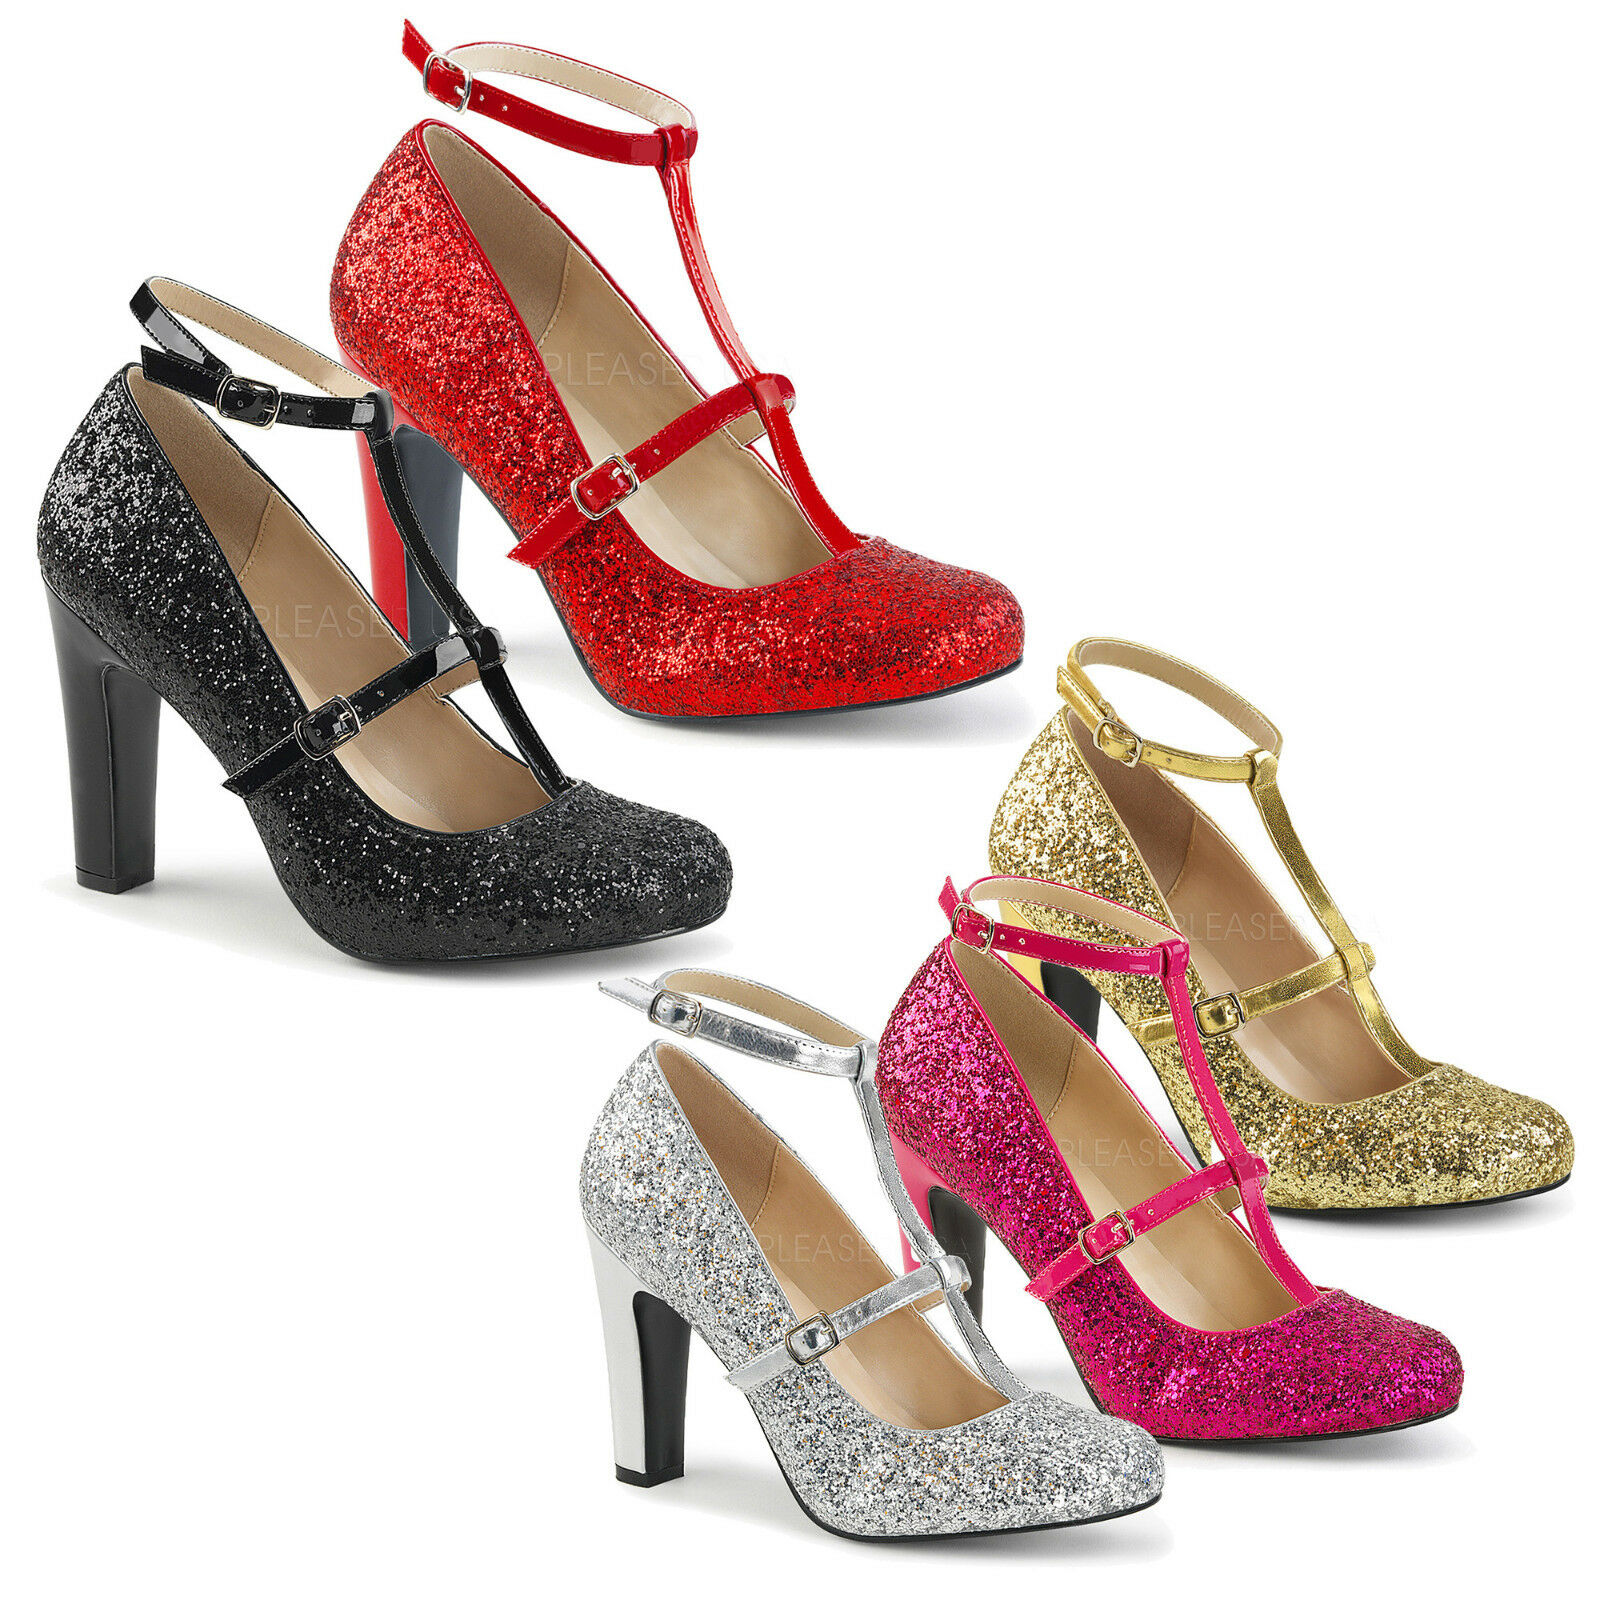 PINK LABEL Rounded By Pleaser - Queen-01 T-Strap Court Schuhe Rounded LABEL Toe Glitter Finish 3c5890